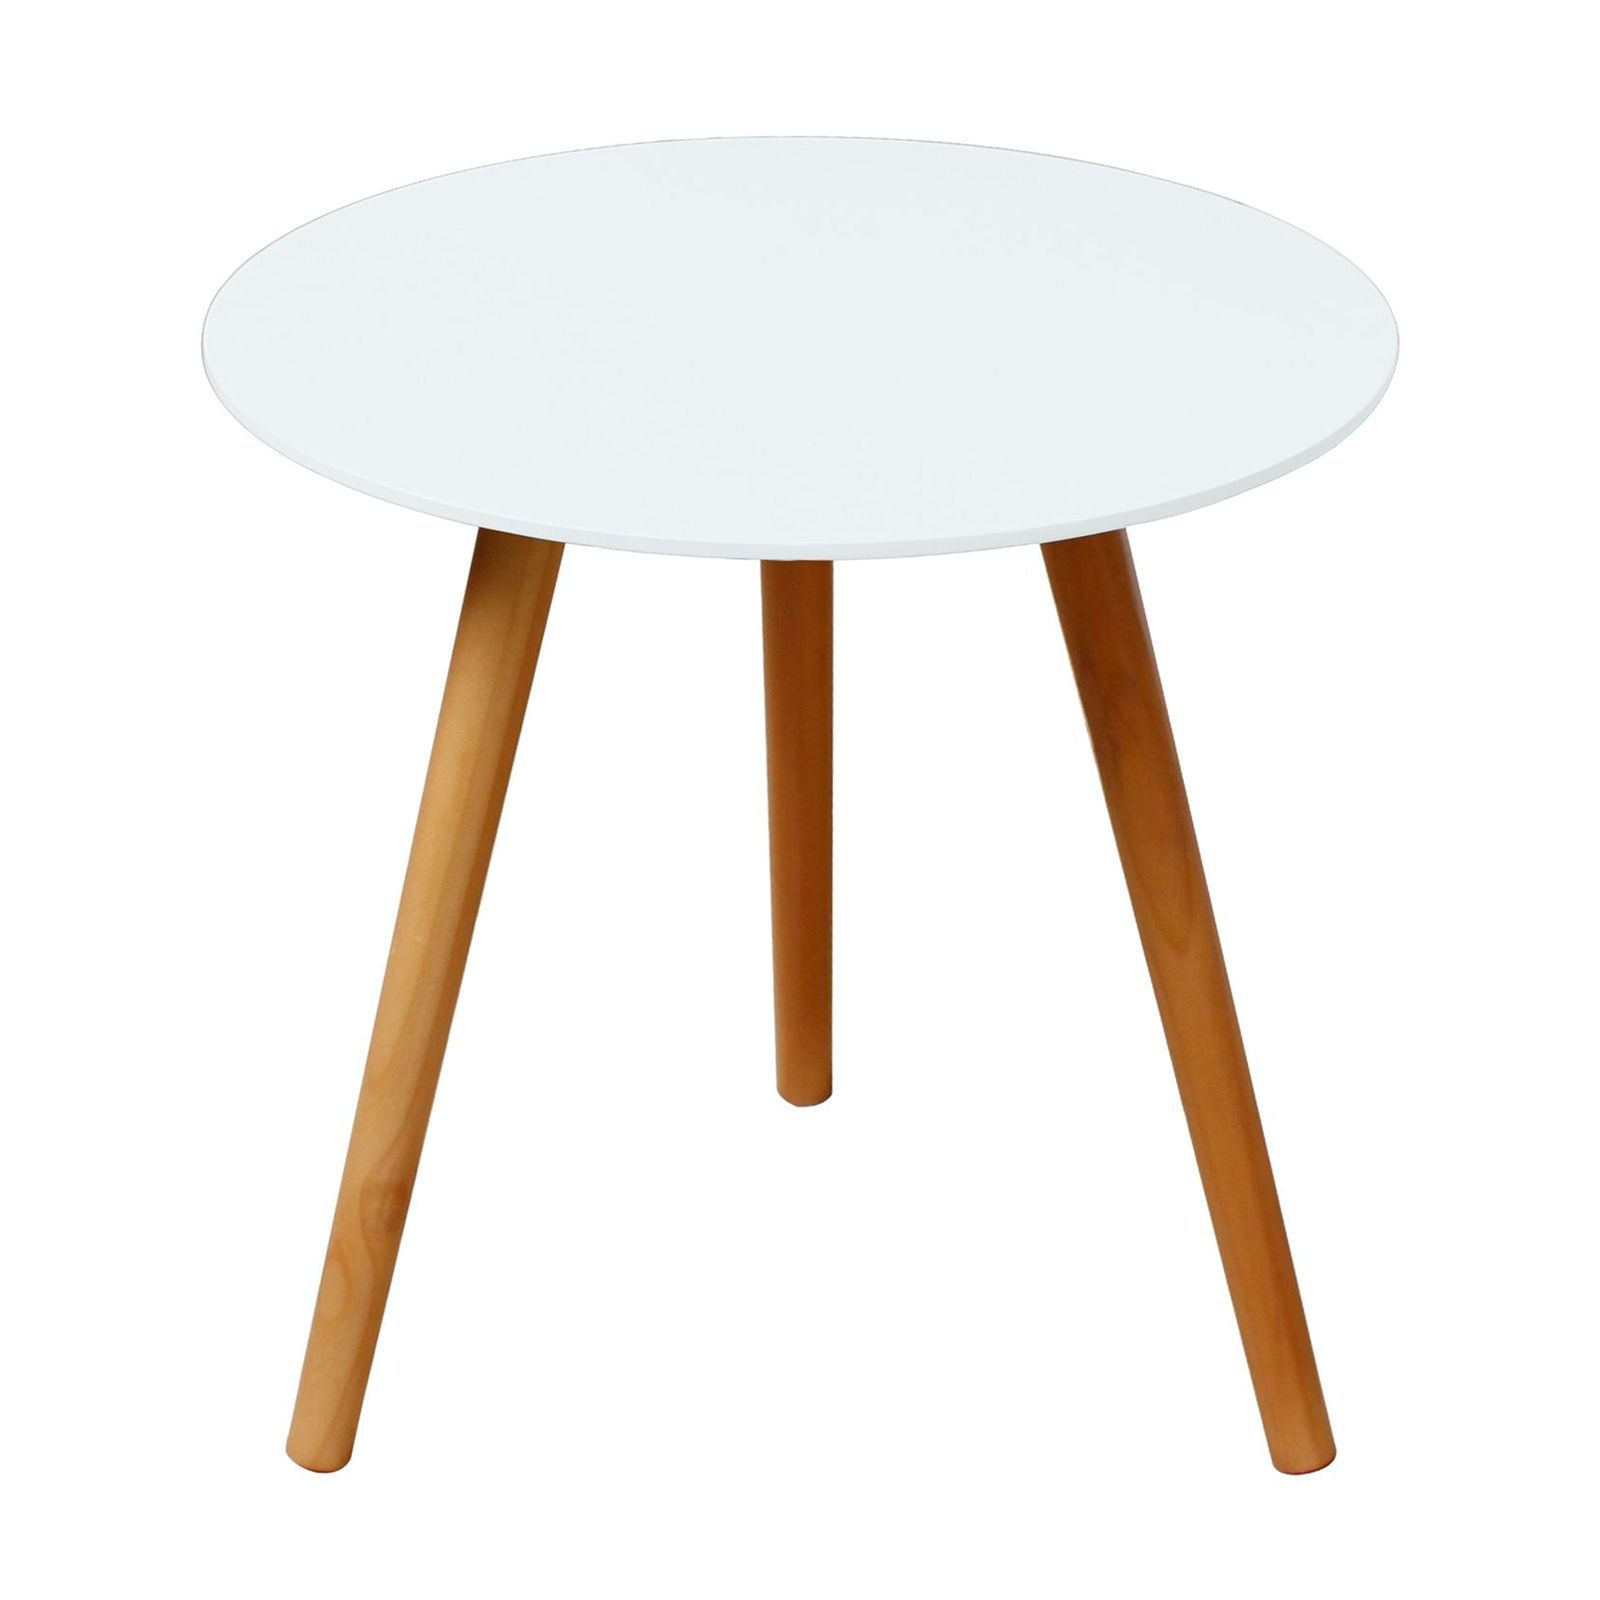 Emejing table basse blanc style marin pictures amazing for Table basse style industriel